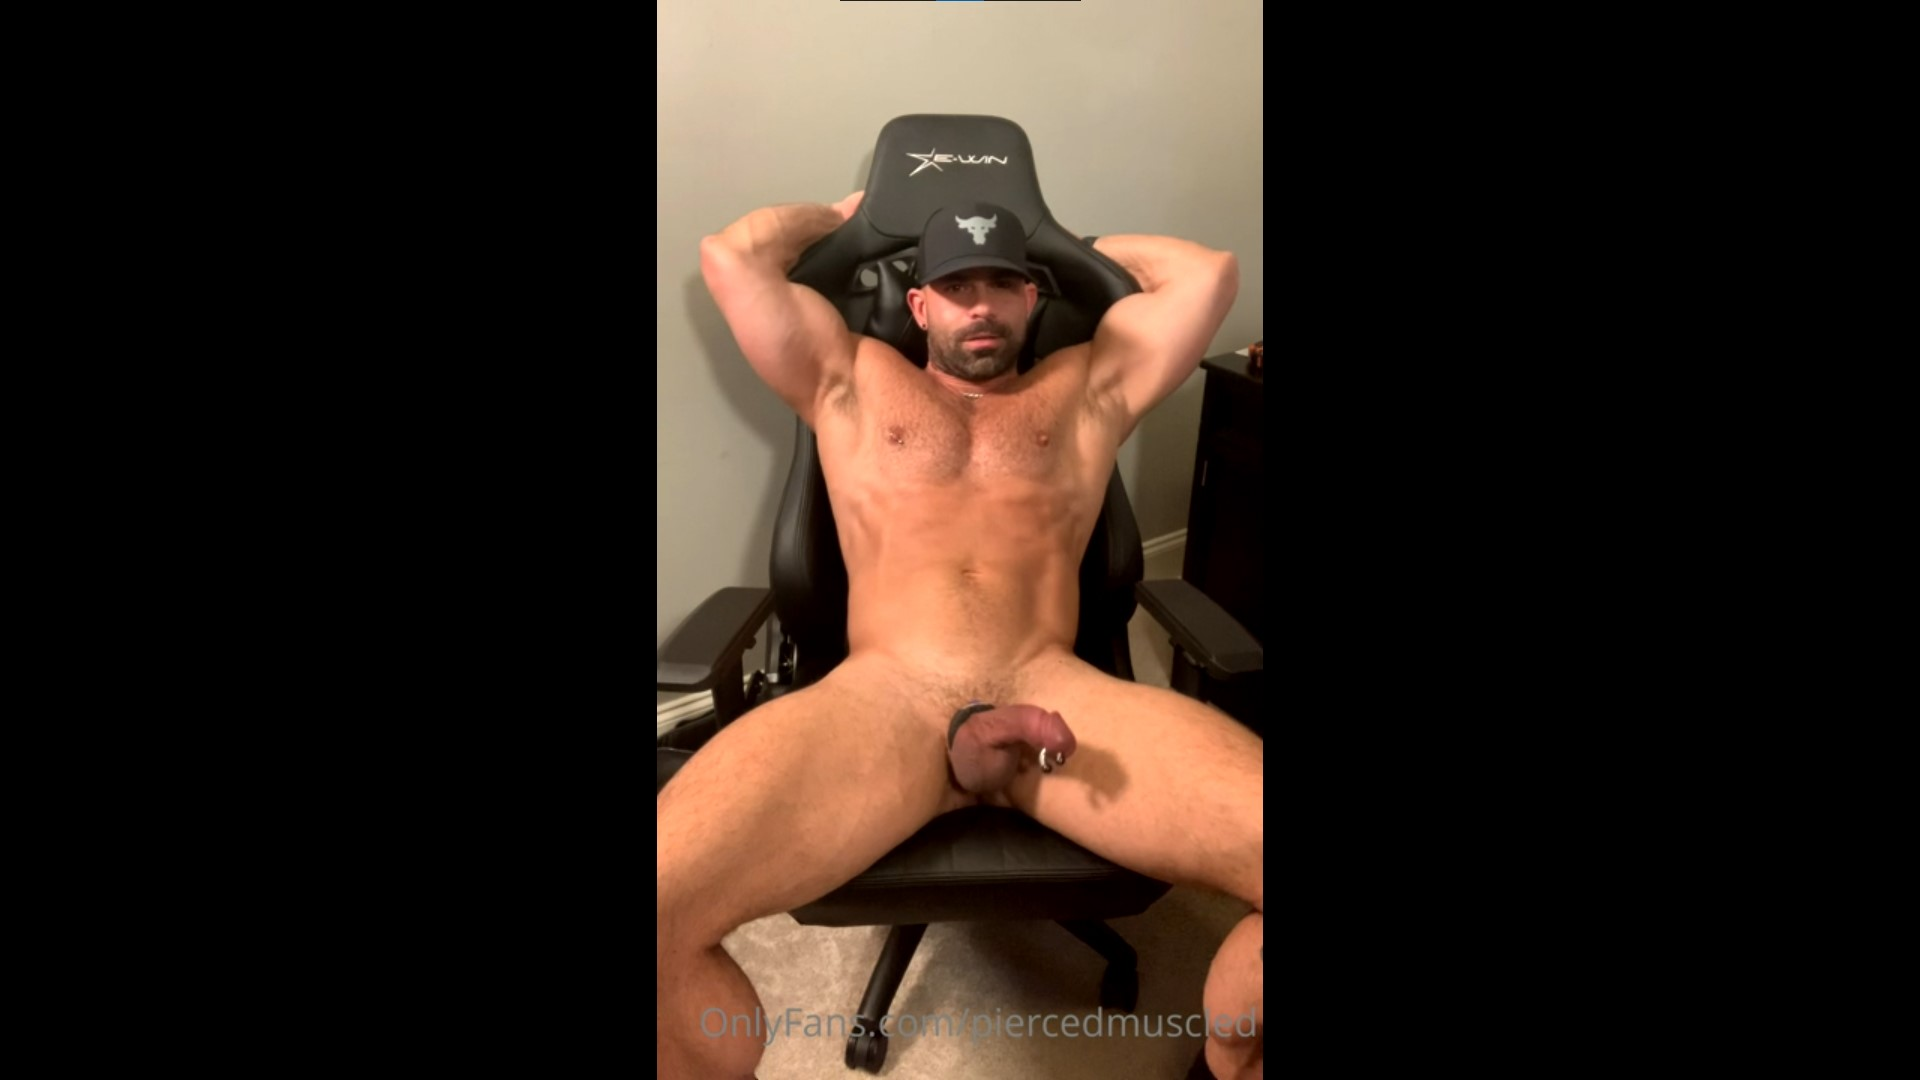 Jerking off while using a vibrating cock ring - Pierced Muscled